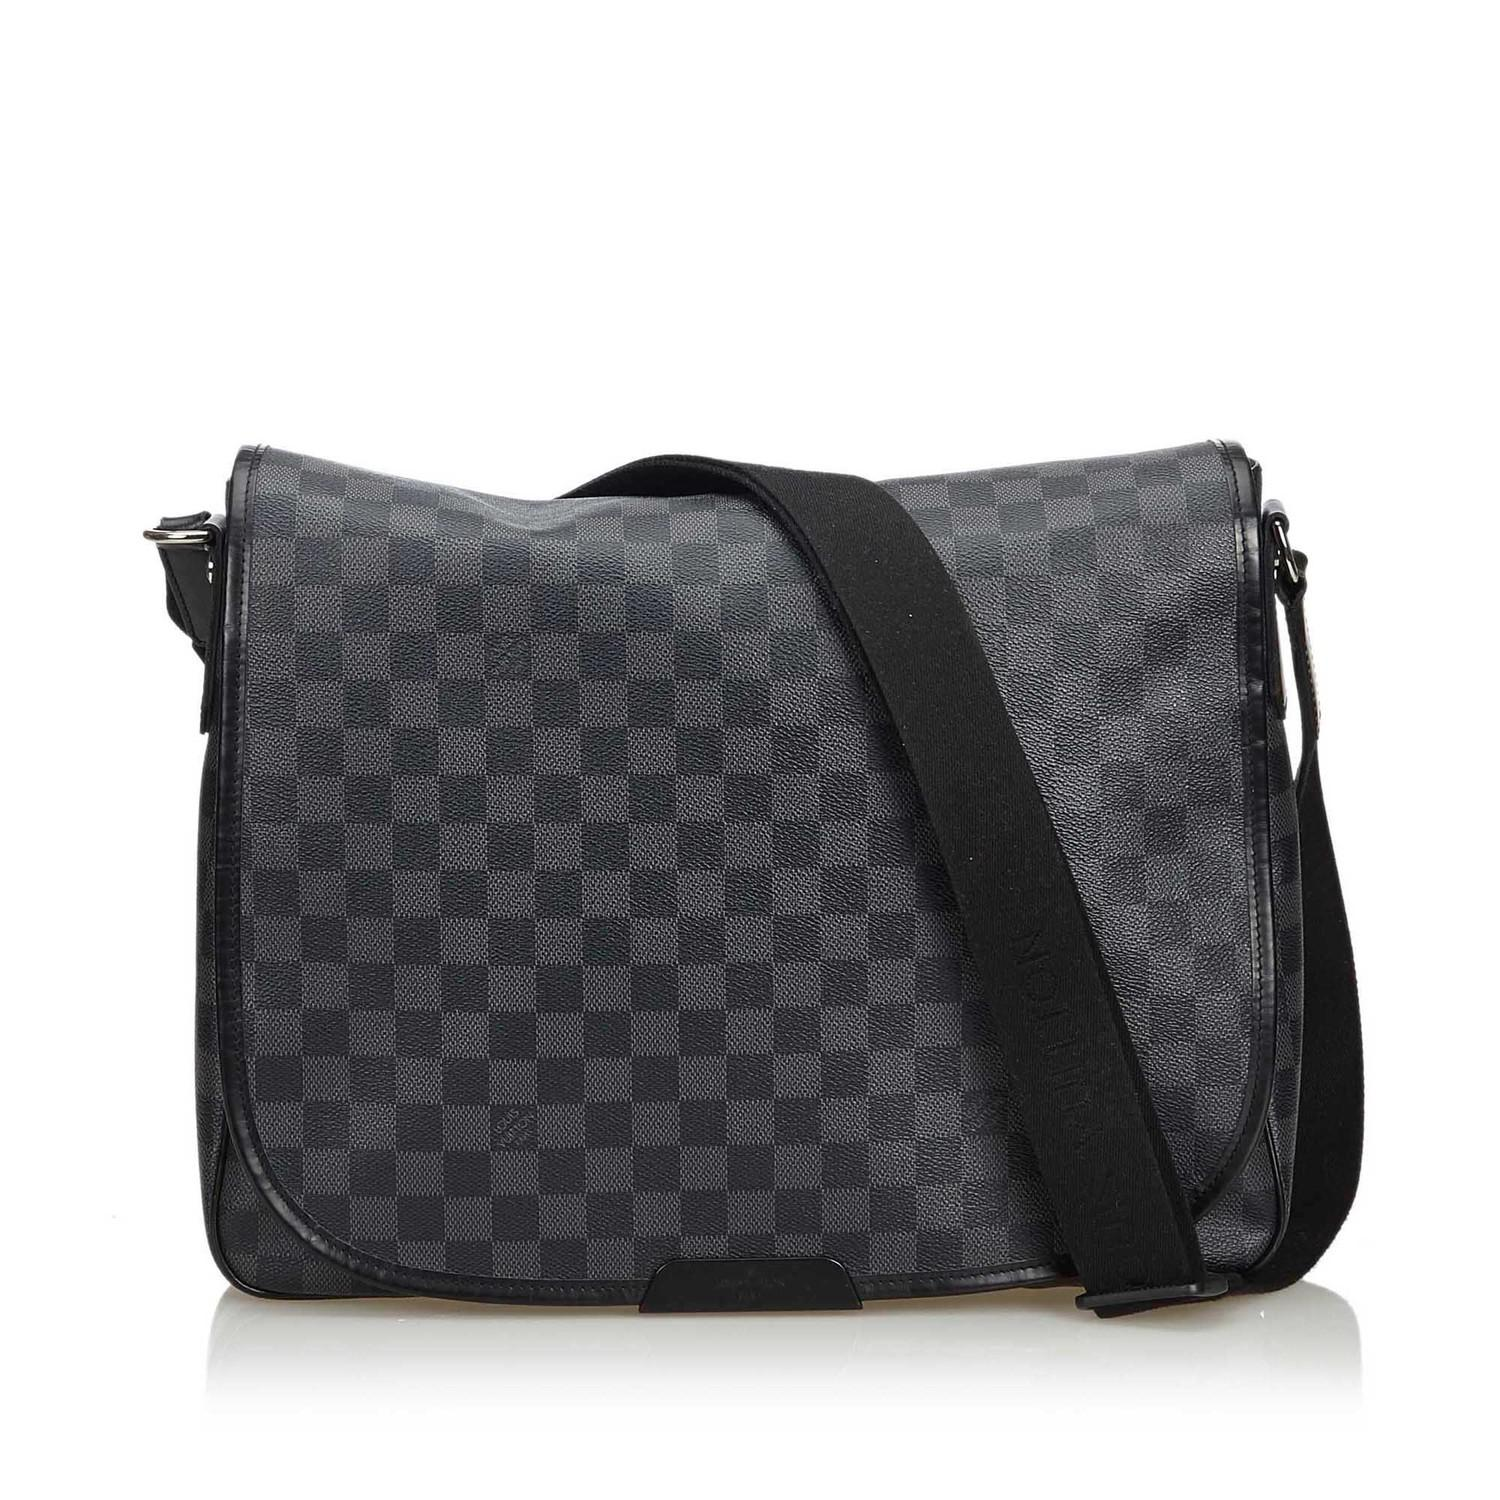 A Louis Vuitton Daniel Messenger Bag Damier Graphite is very resistant to water and scratches, and